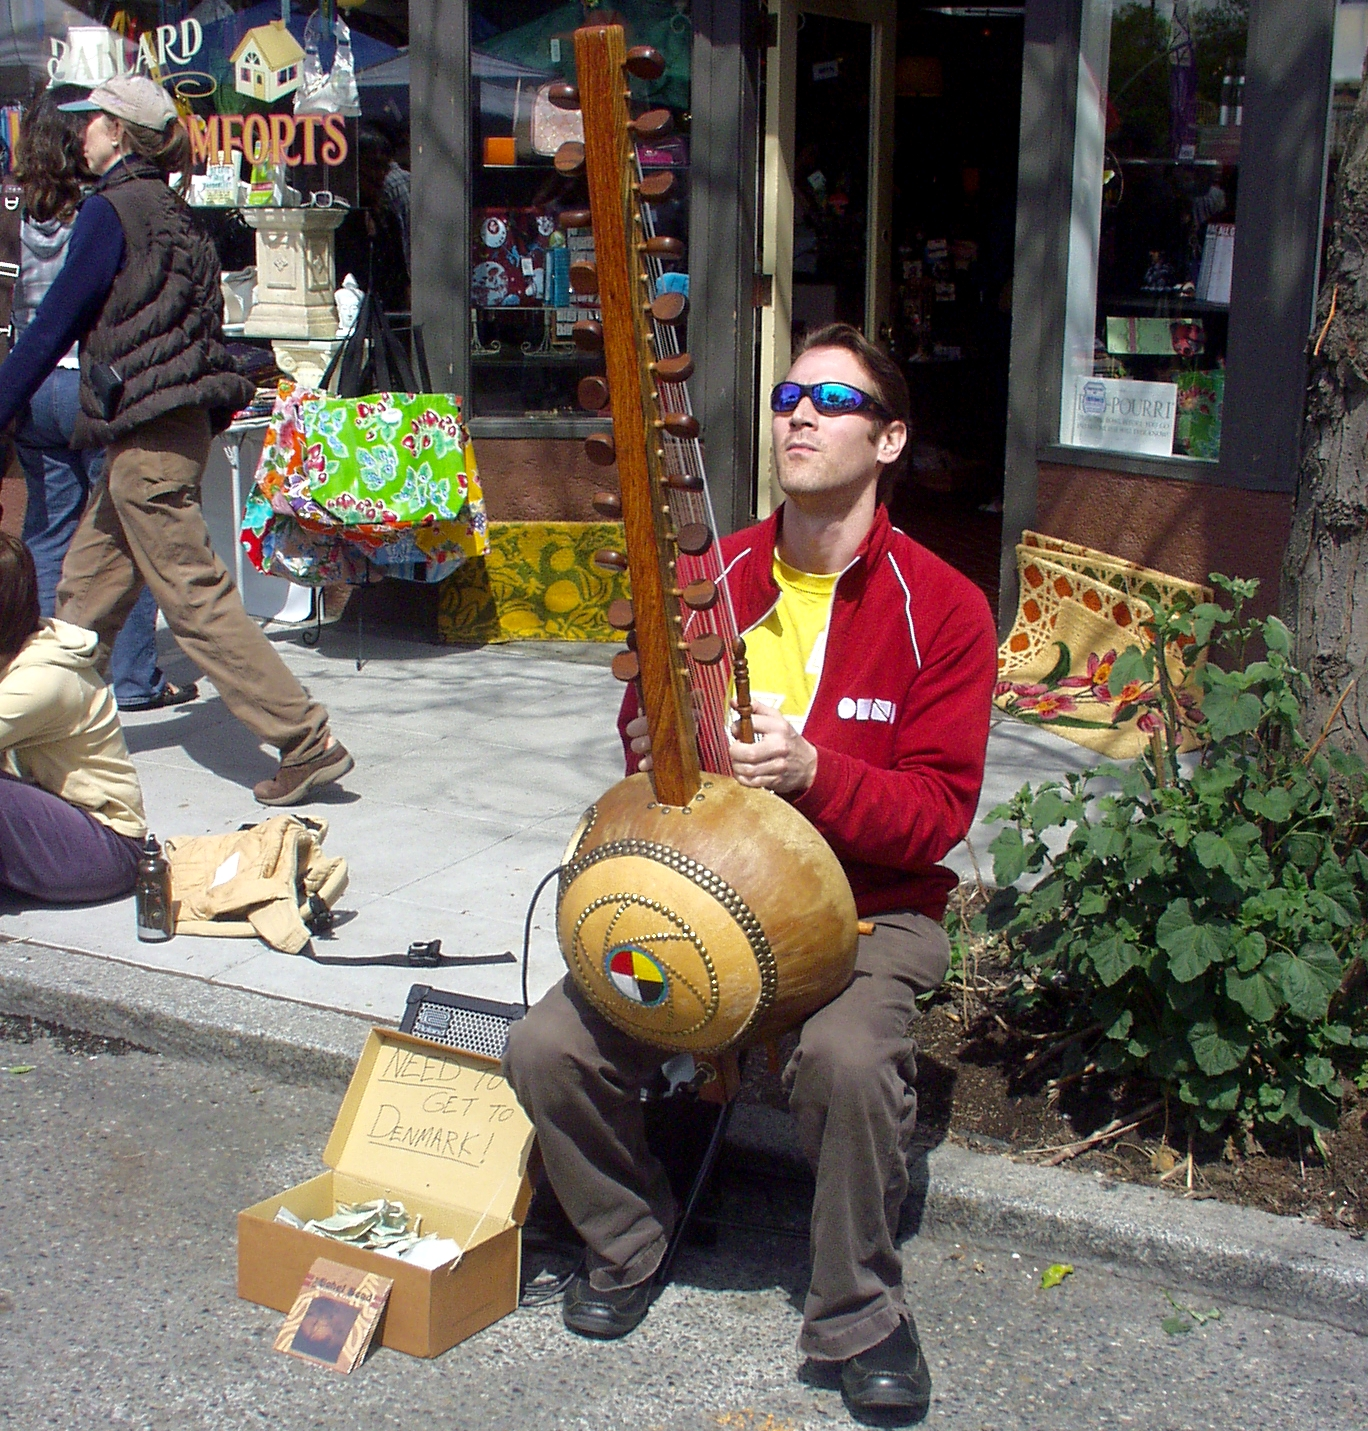 Kane Mathis playing the kora at Ballard Farmers Market on May 3rd. Photo copyright 2009 by Zachary D. Lyons.